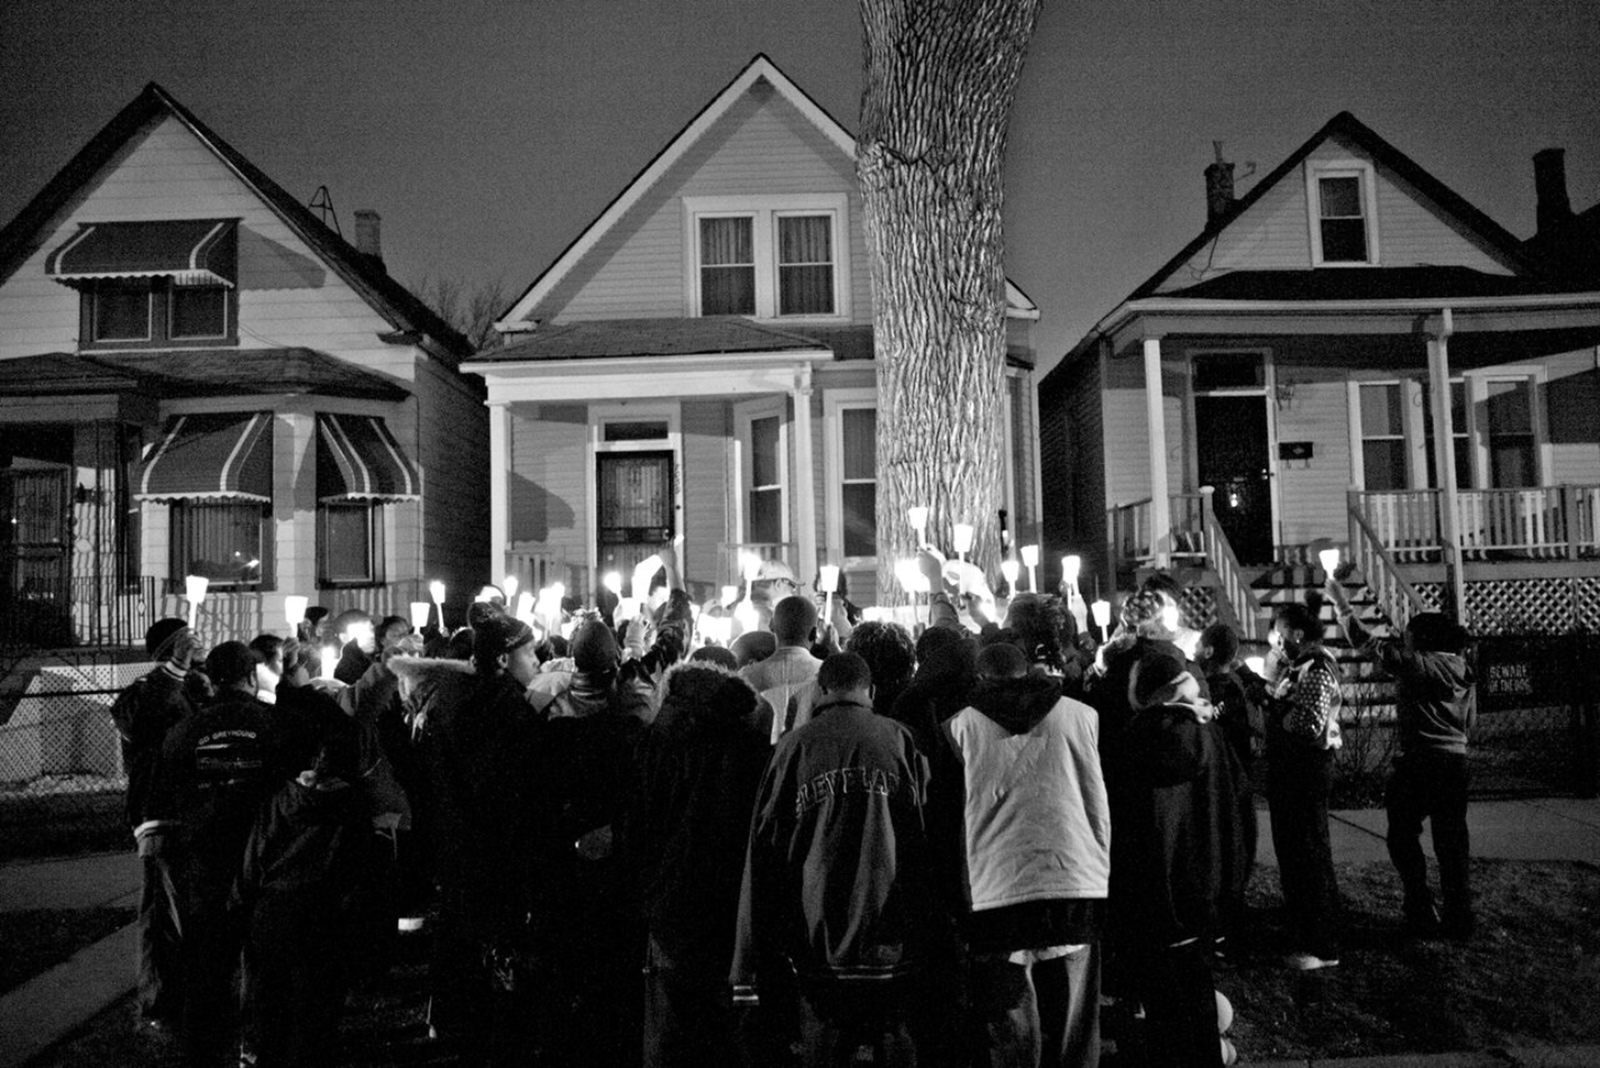 A vigil for Albert Vaughn, a high school student who was beaten to death after a birthday party in Chicago's Englewood neighborhood, 2008; photograph by Carlos Javier Ortiz from his book We All We Got, published last year by Red Hook Editions